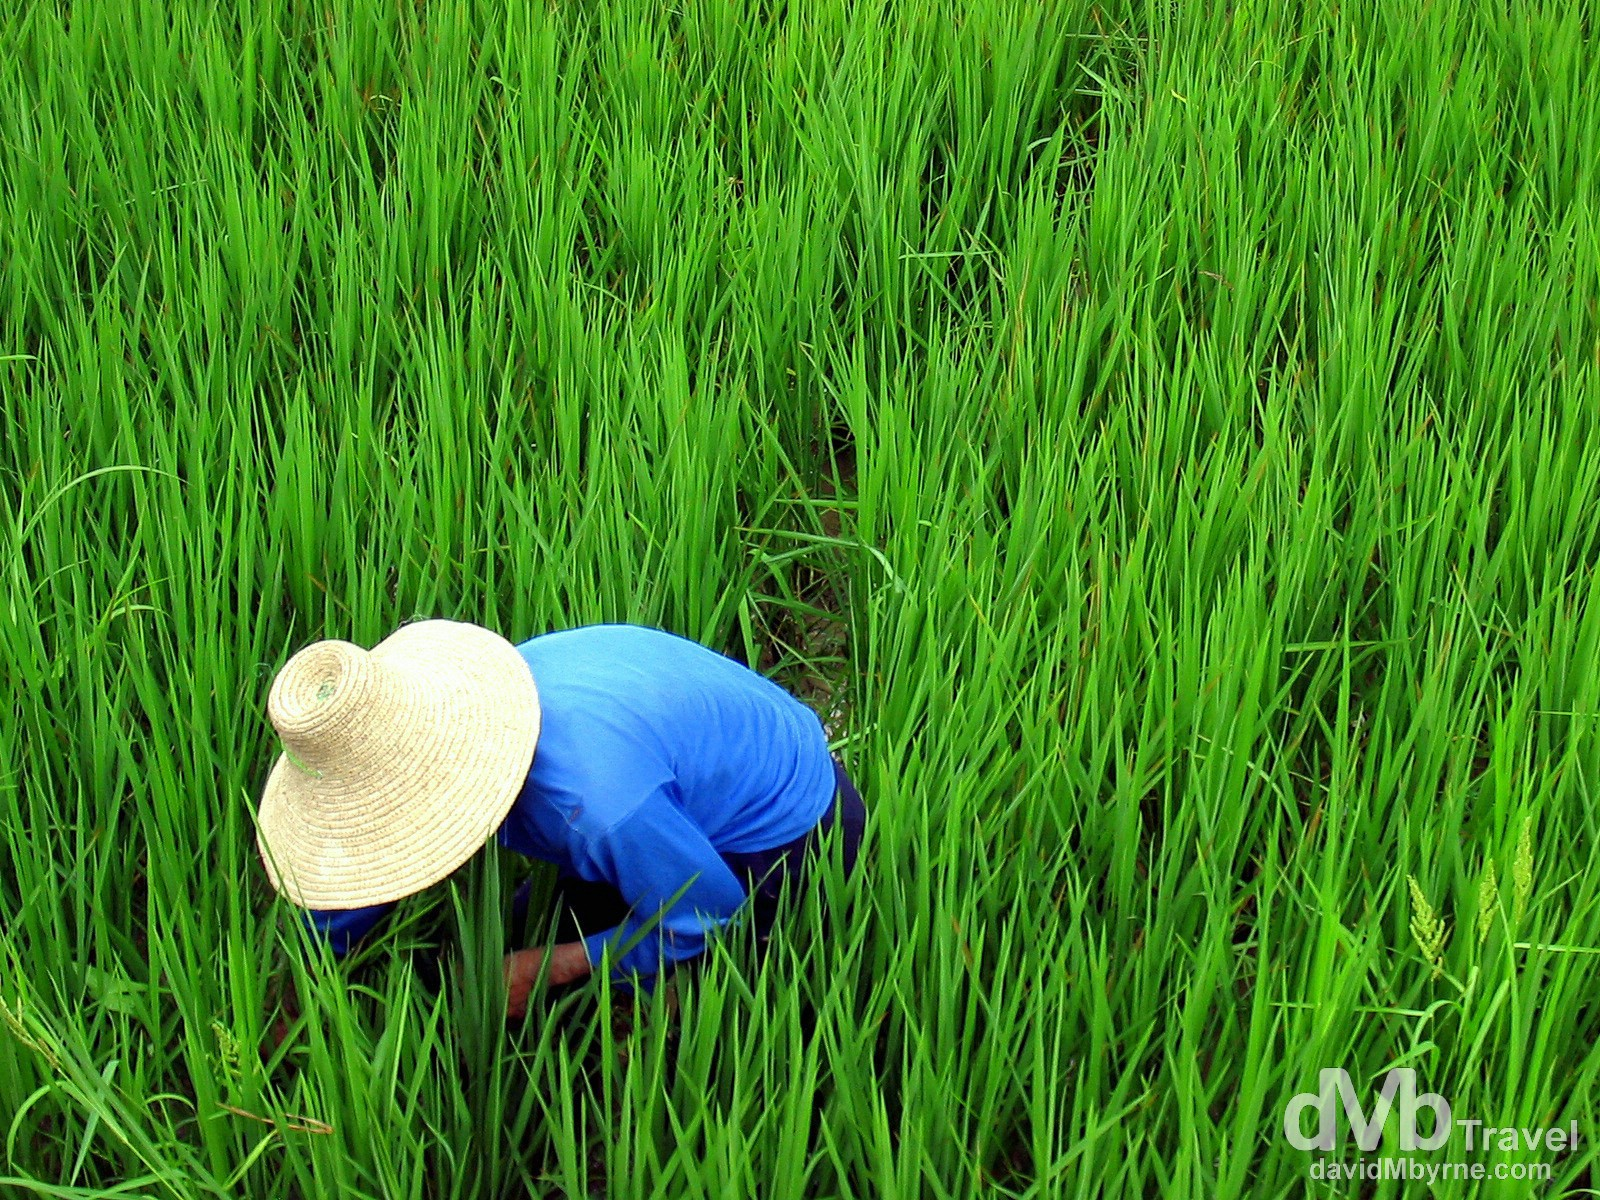 A local working in a rice paddy in the countryside outside Yangshou, Guangxi Province, Southern China. September 10th, 2004.